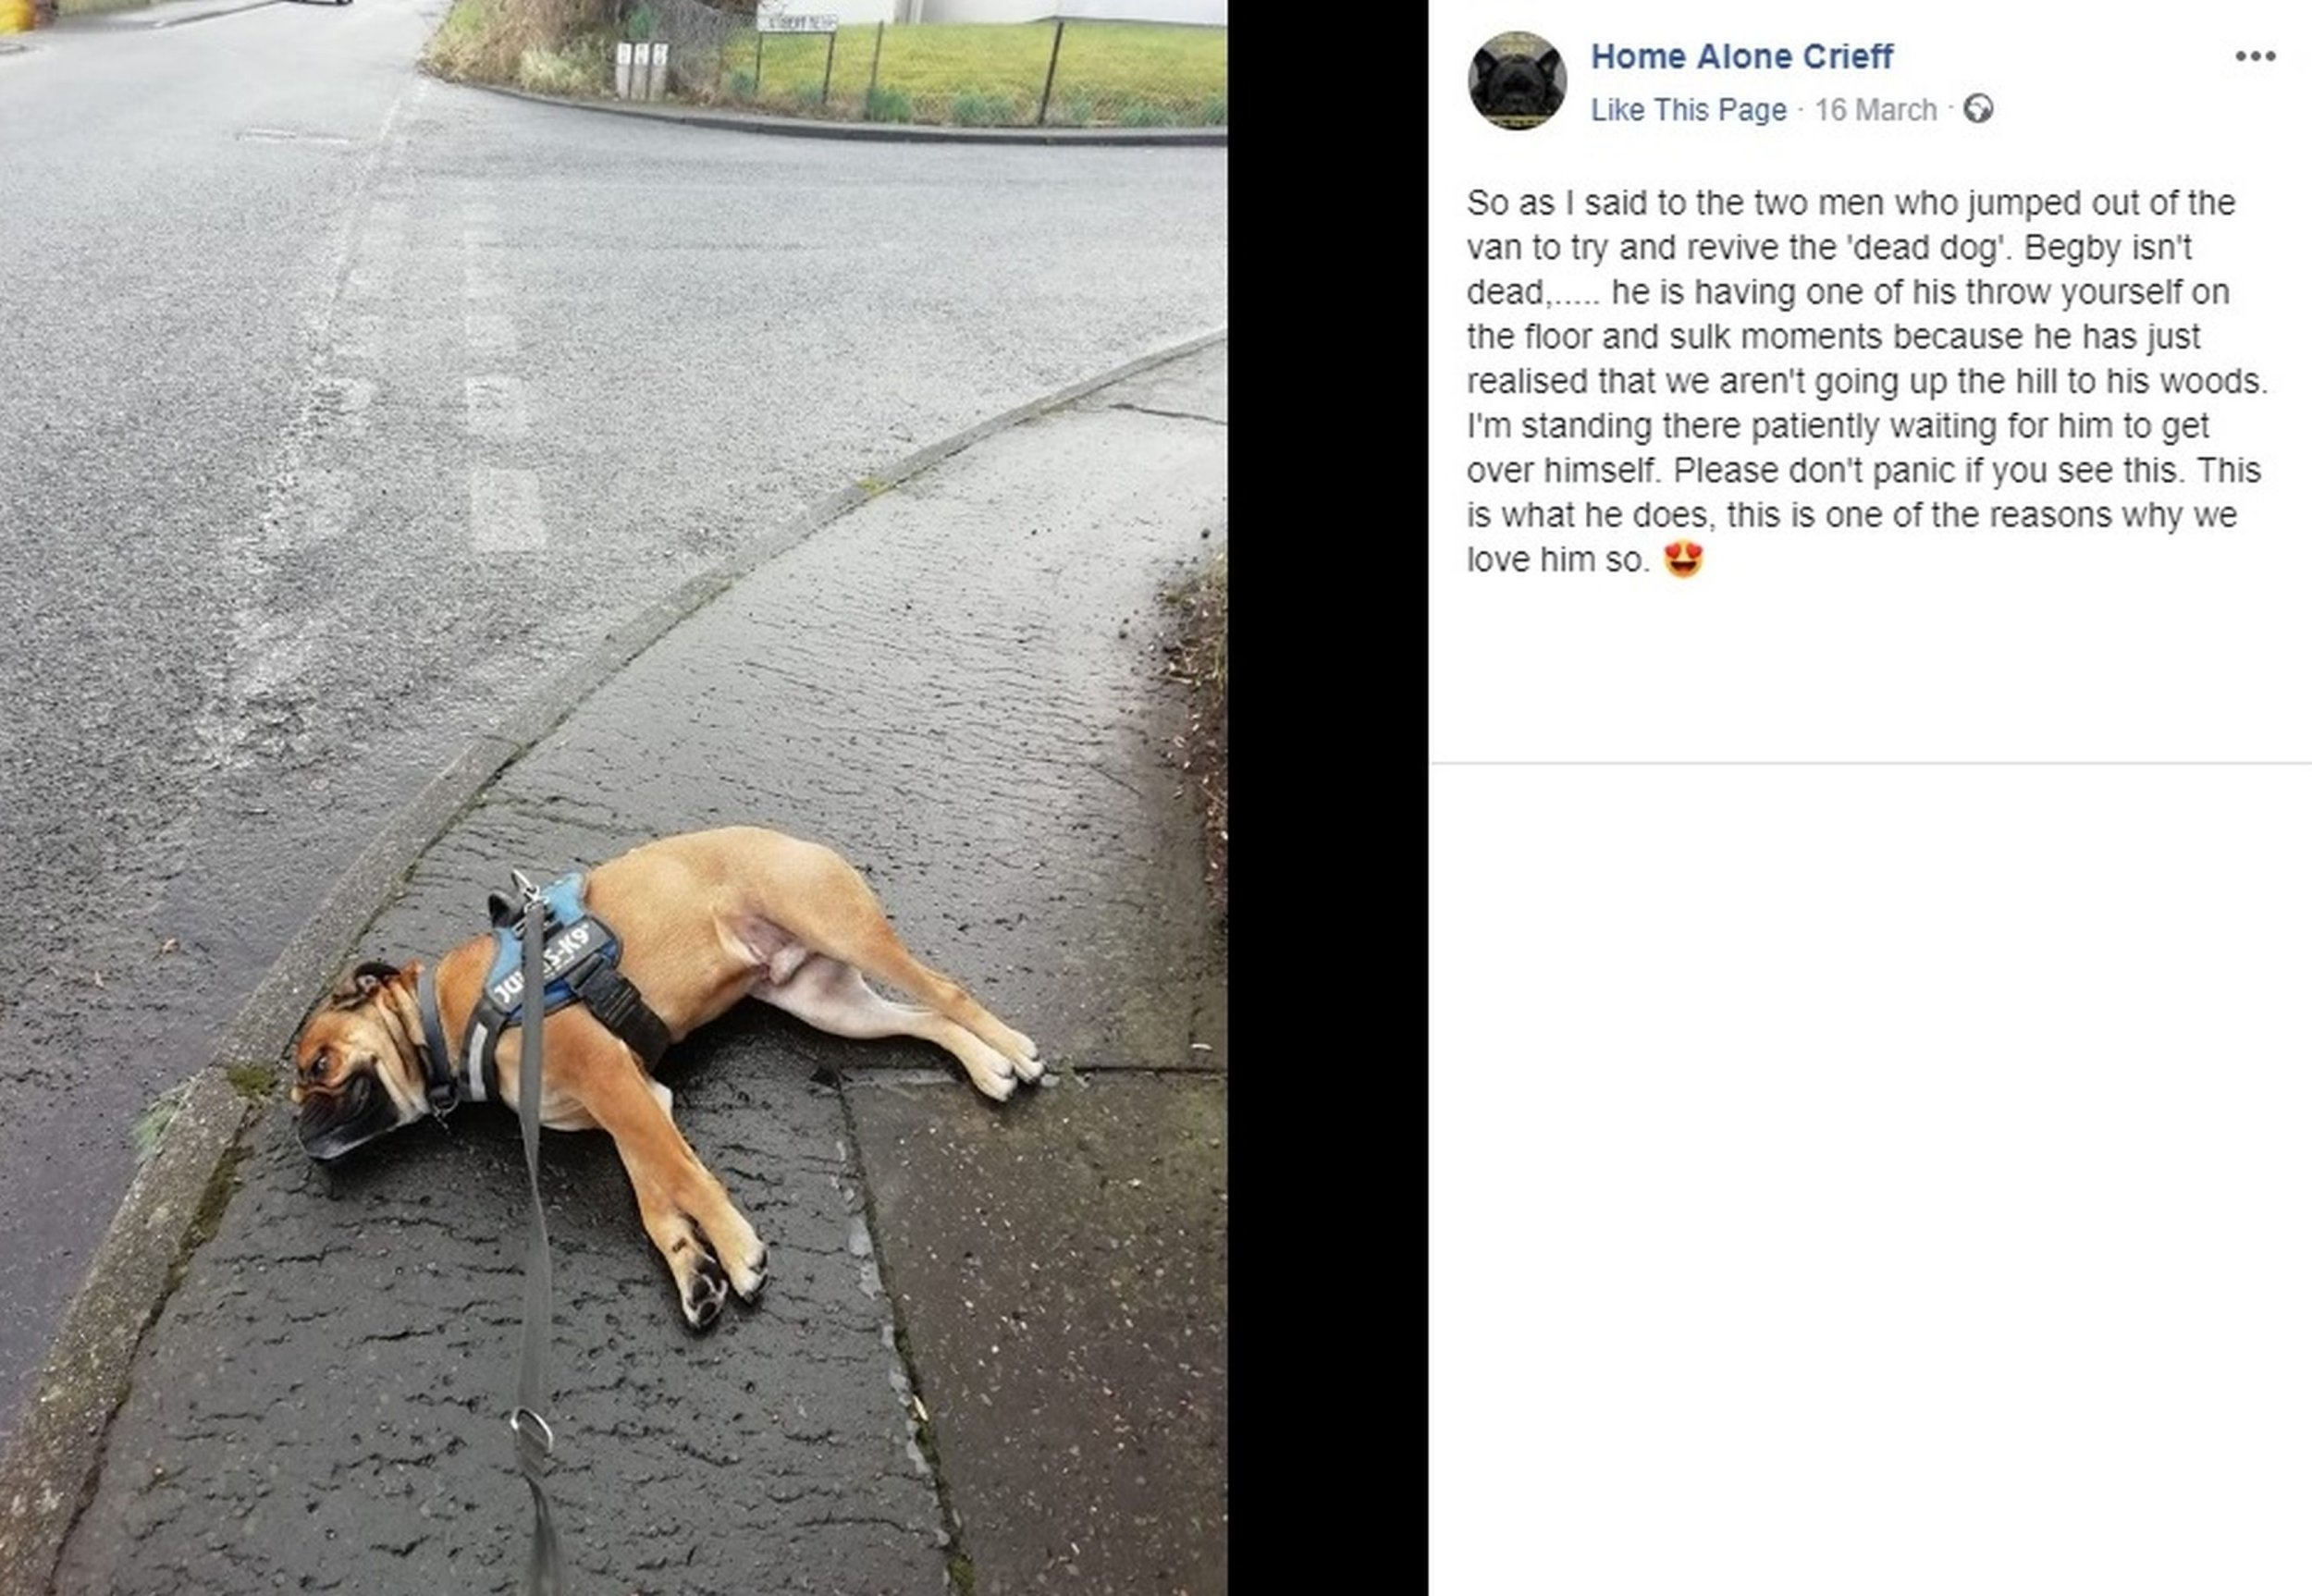 PIC FROM Kennedy News and Media (PICTURED: THE FACEBOOK POST DOG WALKER MICHELE BILSLAND SHARED AFTER BIGBIE HIT THE FLOOR AND PASSING WORKMEN THOUGHT HE WAS DEAD) Two kind-hearted workmen raced over to assist a dog walker and revive her ???dead??? dog - only to discover the petulant pooch was staging a lie-down protest at not going on his favourite walking route. Professional dog walker Michele Bilsland had agreed to take Old English Bulldog Begbie on a shorter walk then usual last Friday afternoon due to the bad weather. Michele took Begbie, named after Robert Carlyle???s character in cult film Trainspotting, out of the cul-de-sac and turned left instead of right to take him on a quick walk around the block. SEE KENNEDY NEWS COPY - 0161 697 4266